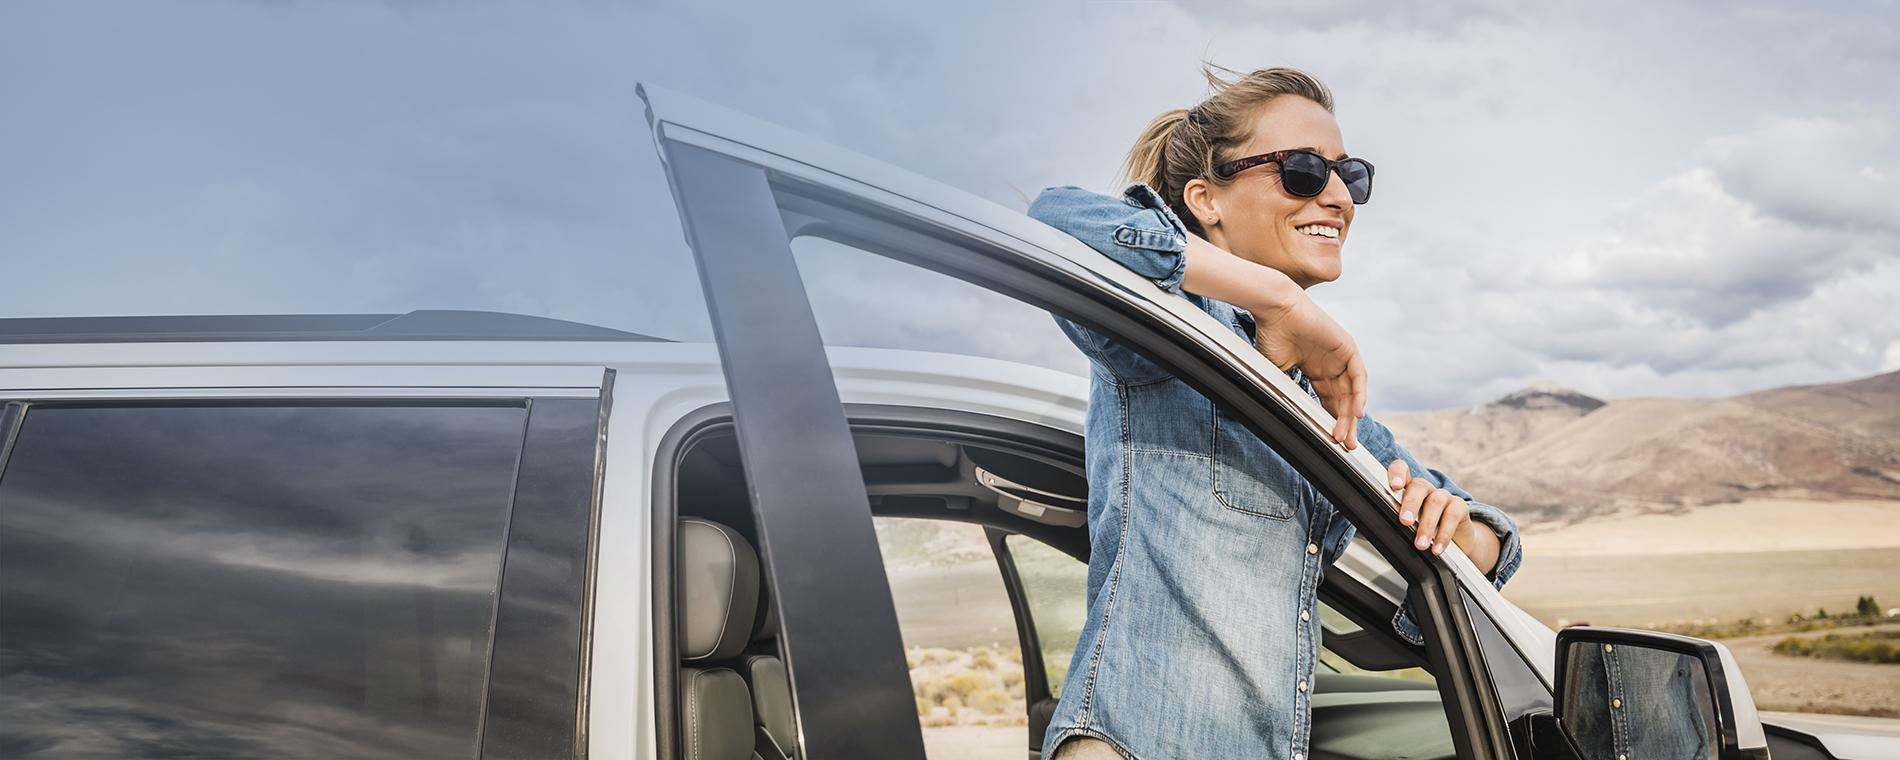 Confident woman securely covered by reliable car insurance